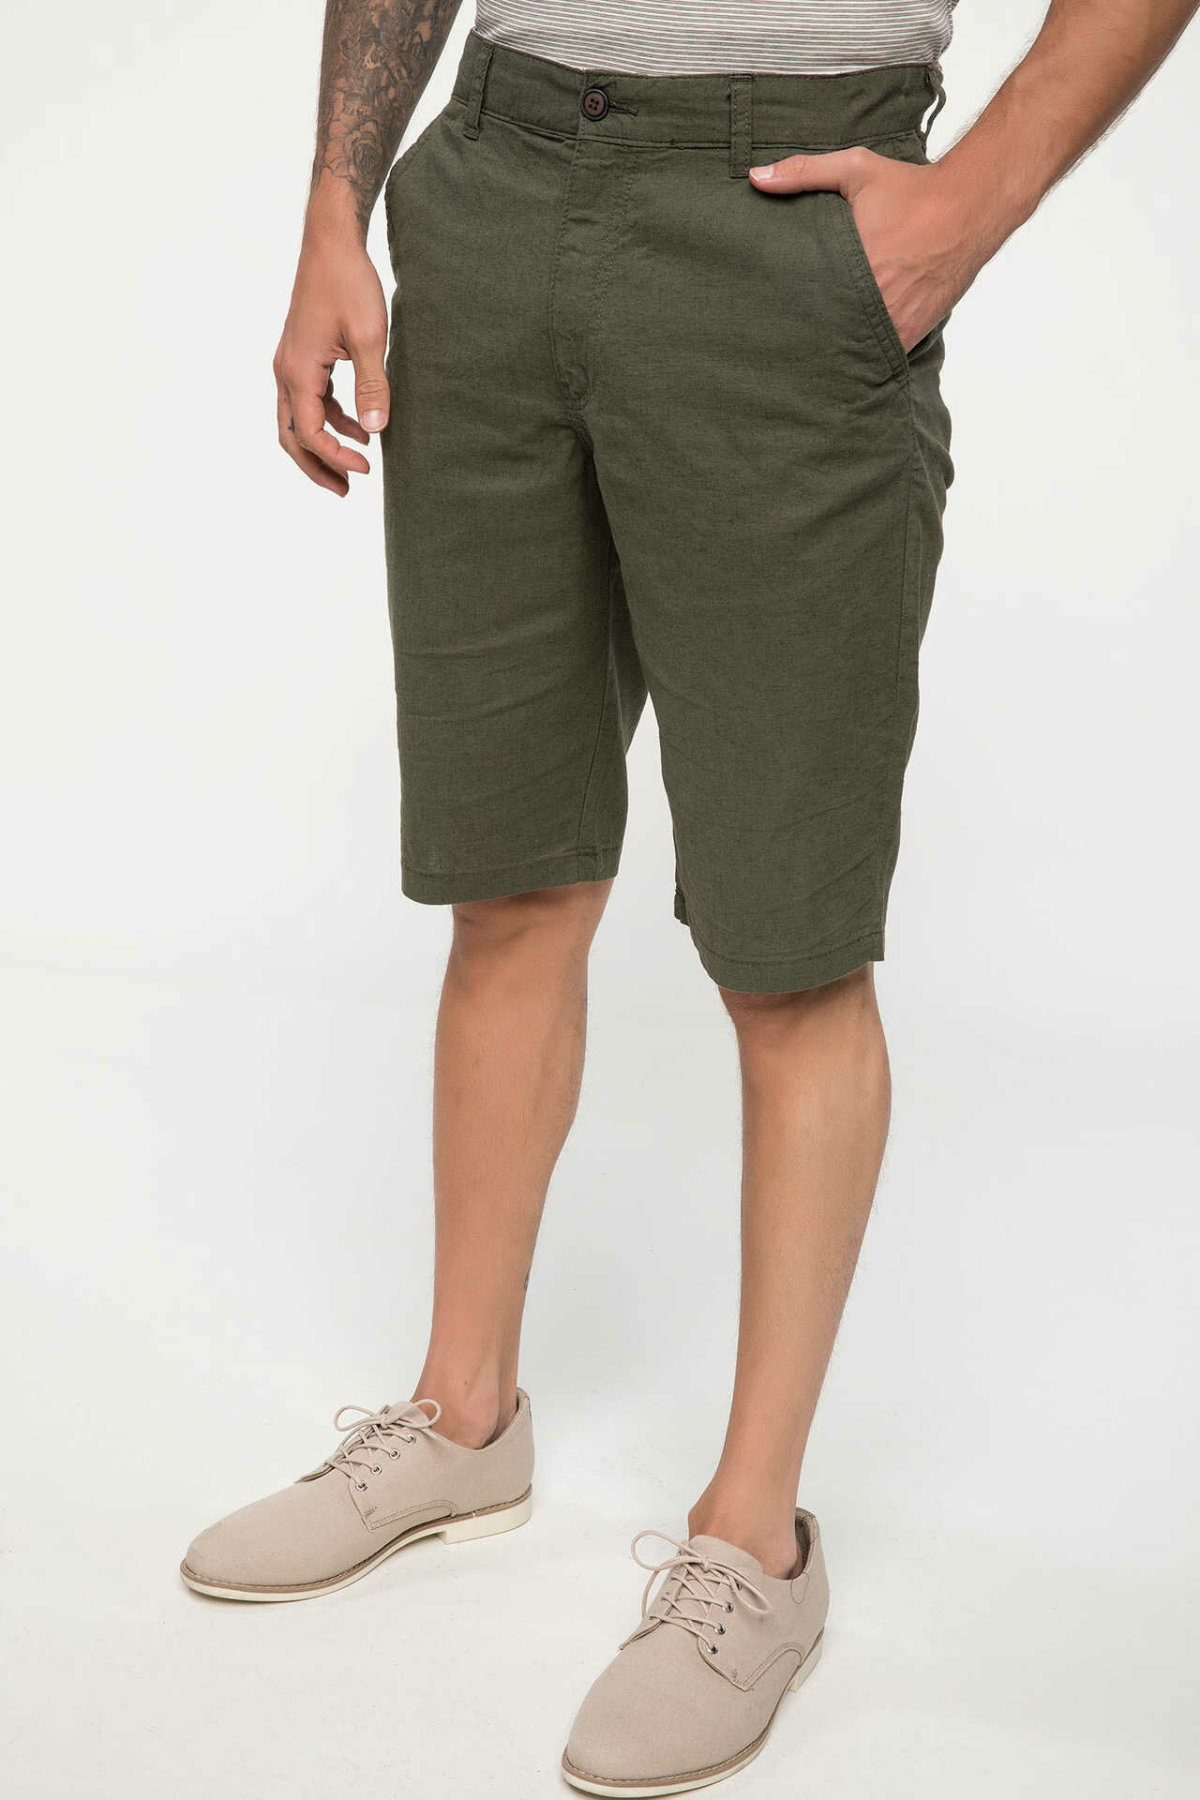 DeFacto Man Summer Straight Shorts Men Casual Army Green Bermuda Shorts Men Mid-Waist Bottoms-I7564AZ18SM